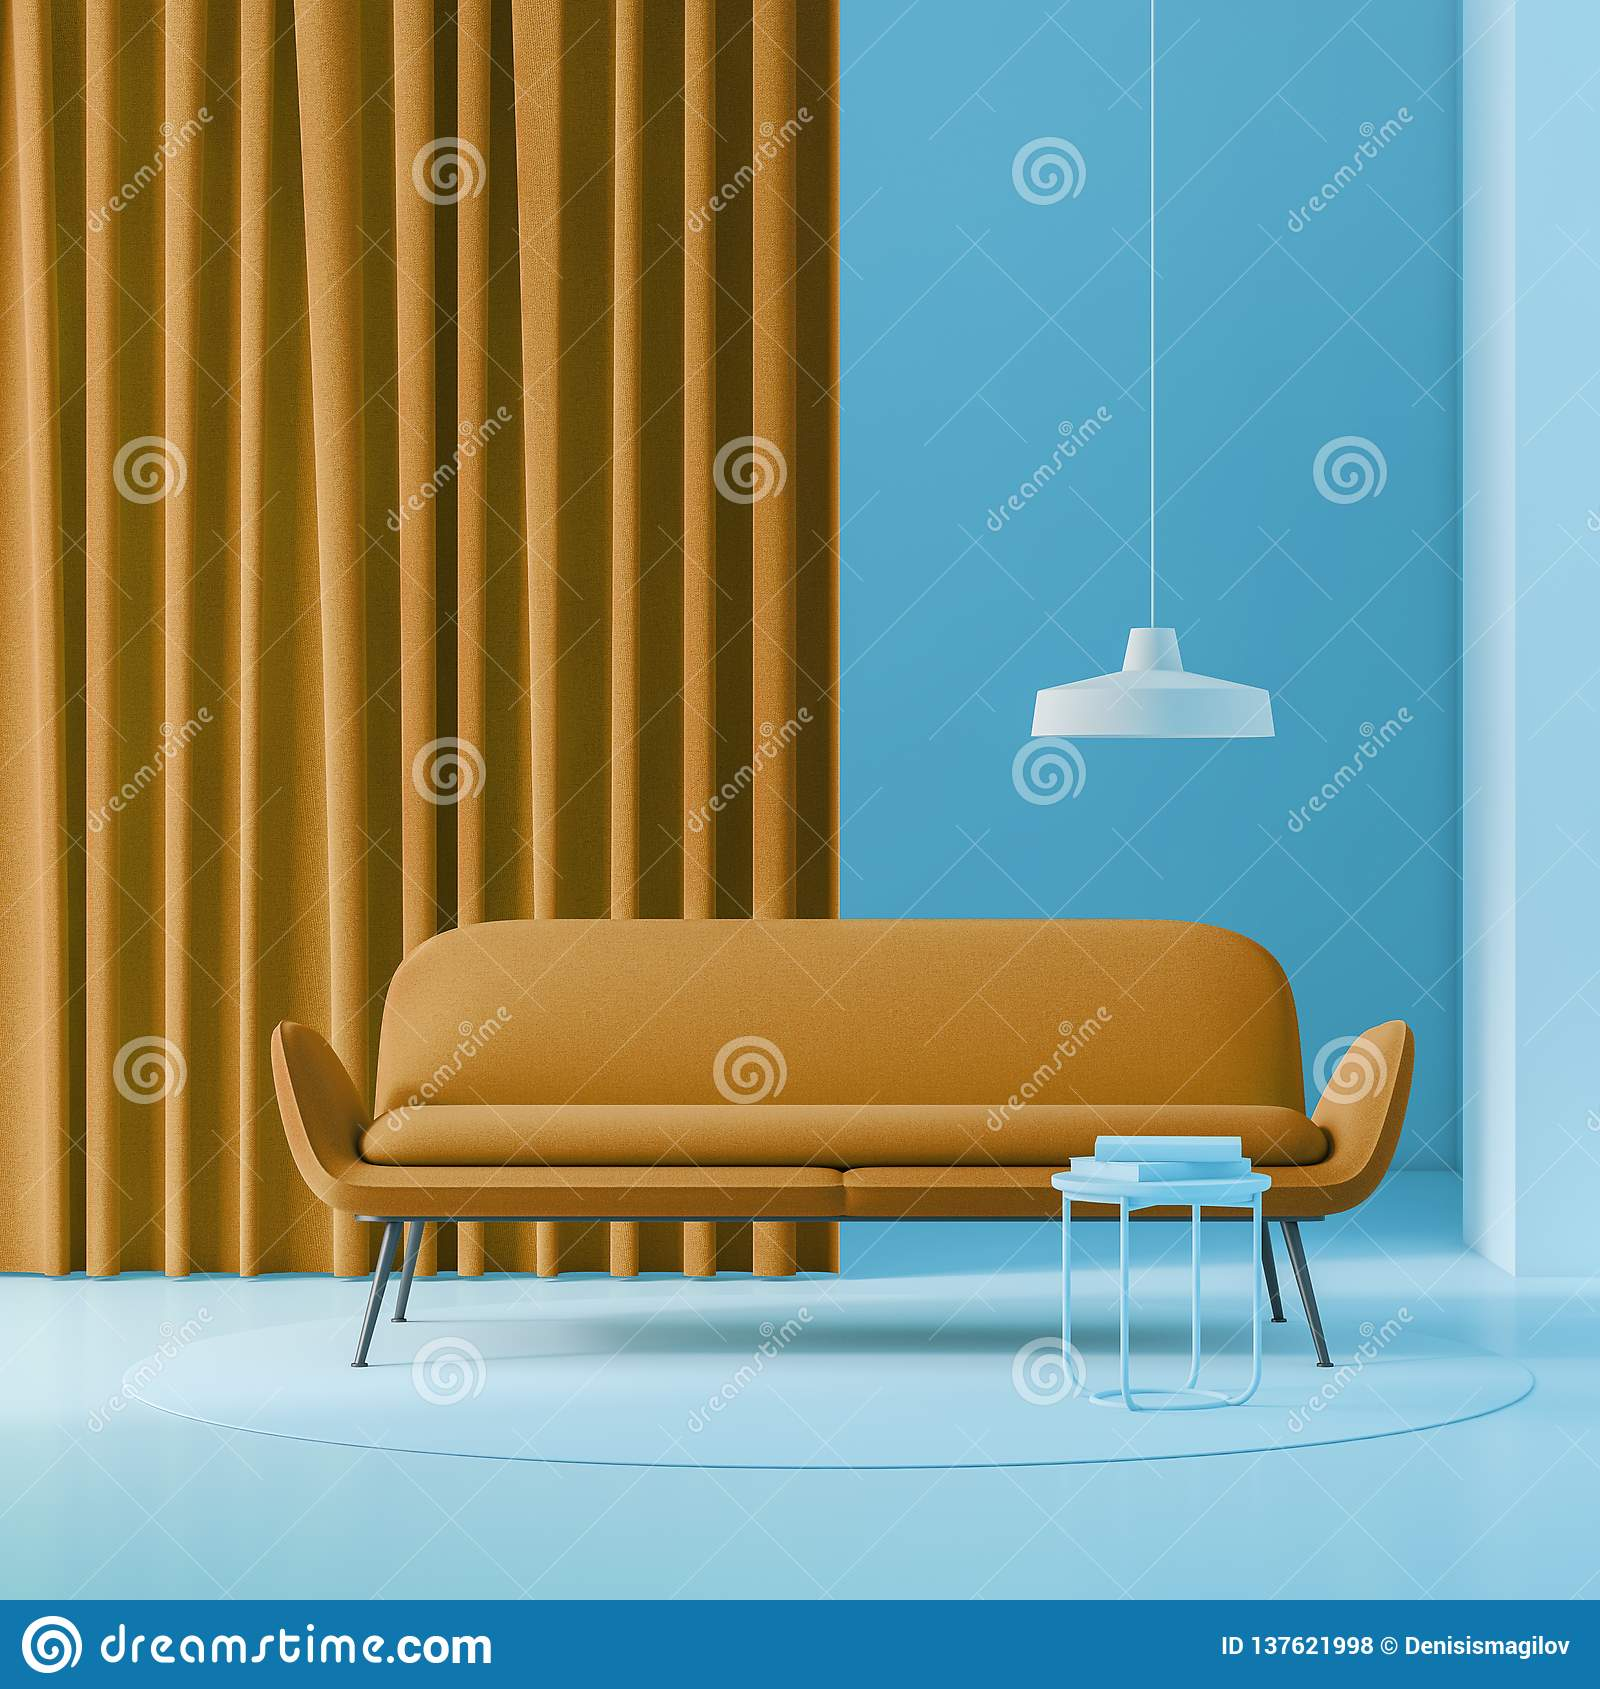 Blue Living Room With Brown Sofa Stock Illustration Illustration Of Contemporary Hardwood 137621998